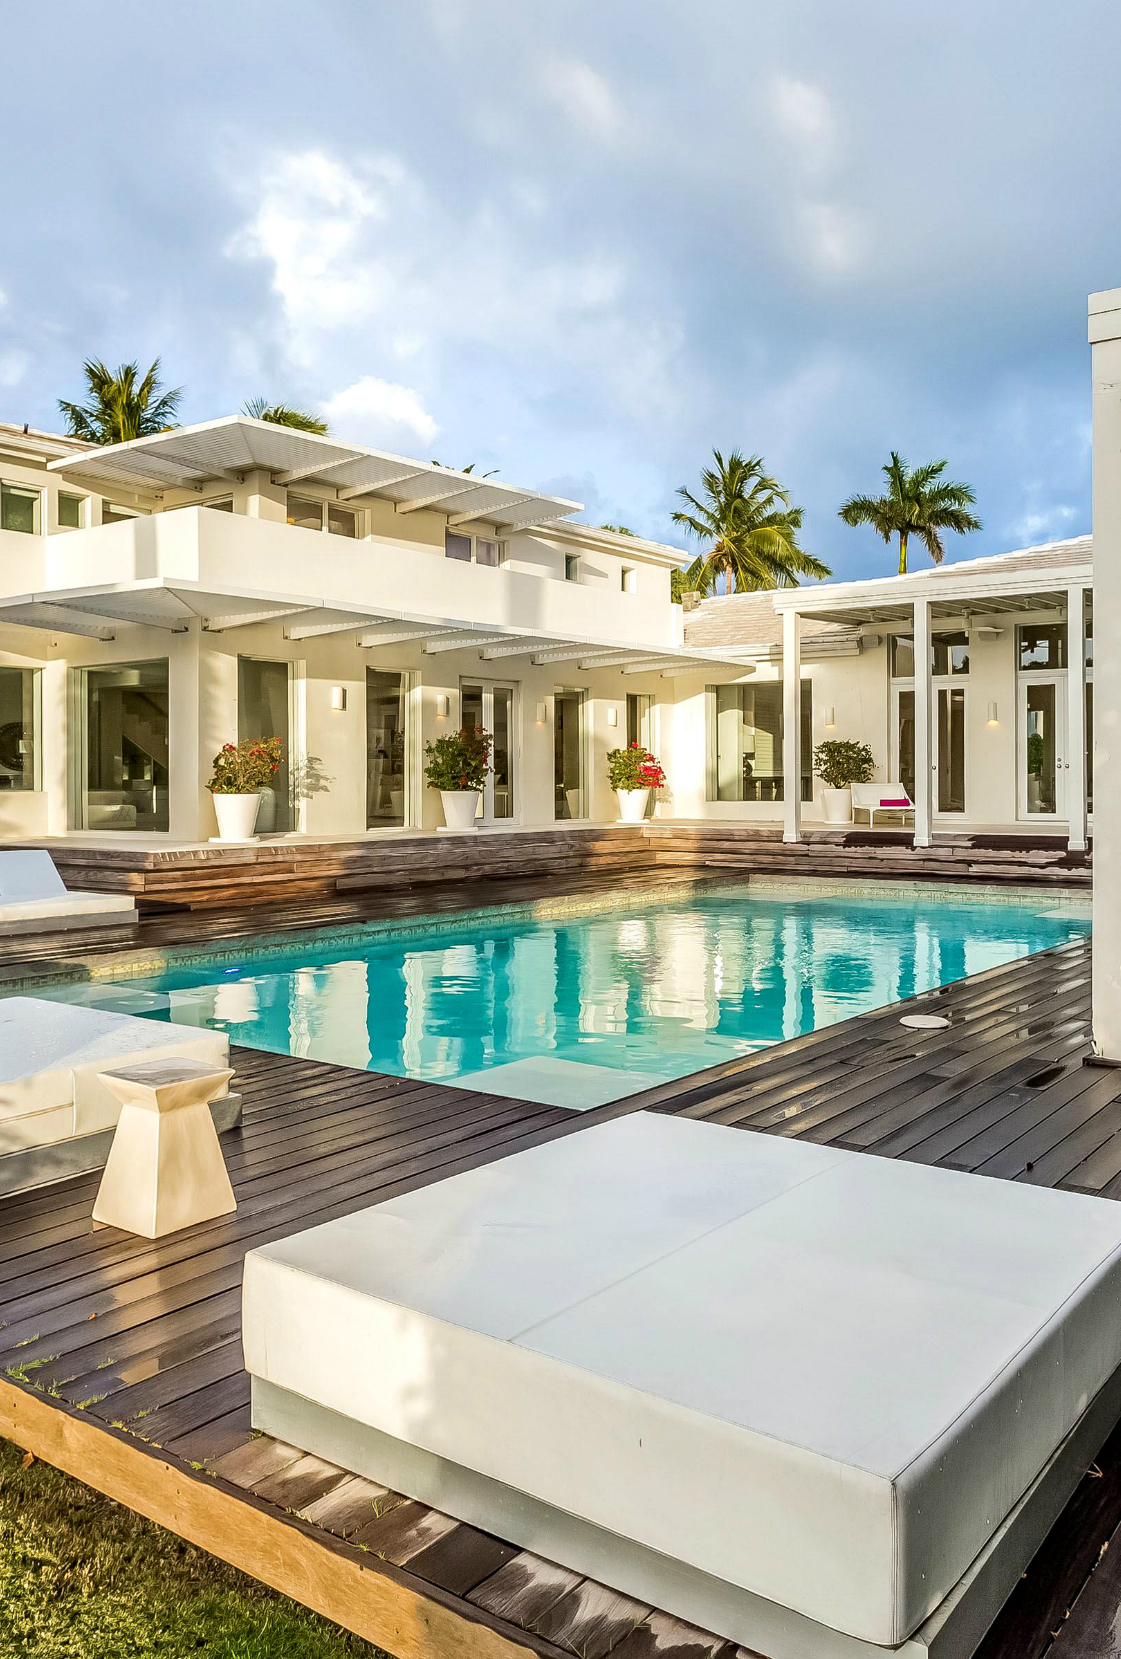 Be Inspired By Shakira´s Beach House in Miami